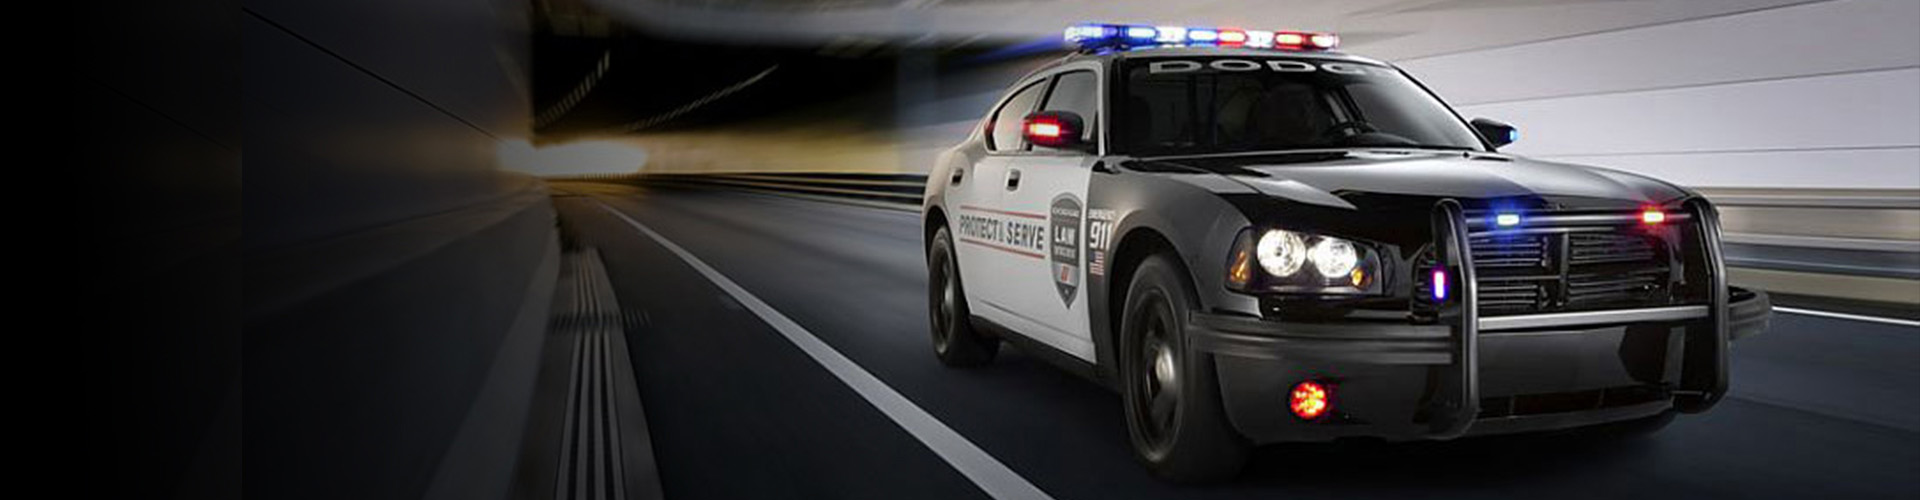 Law enforcement Vehicle monitoring solution